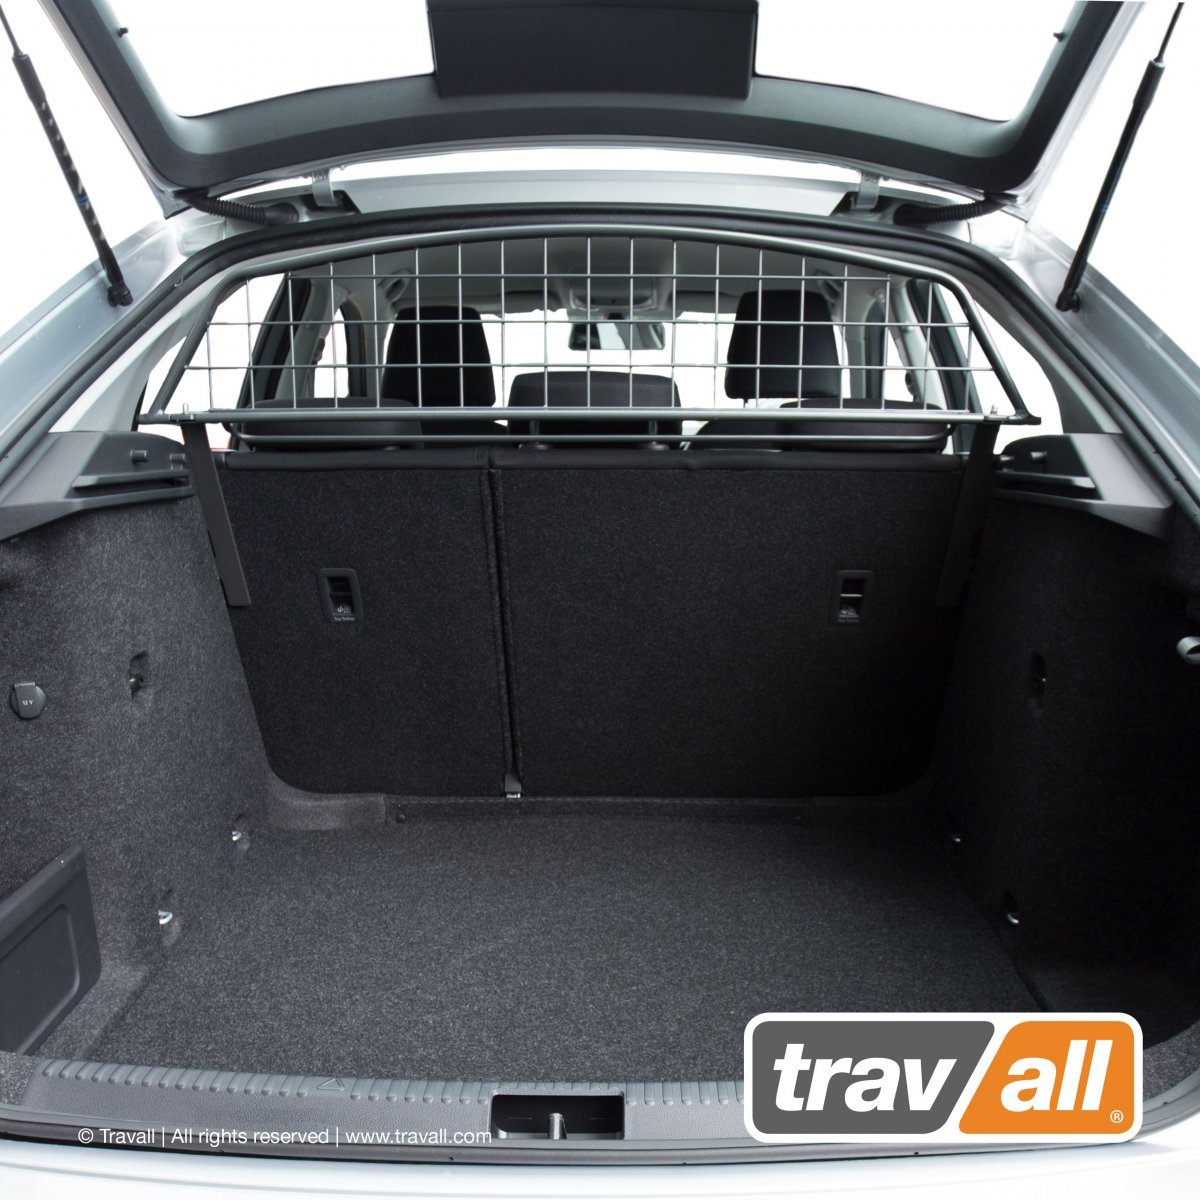 Travall®GUARD for Skoda Octavia 5 Door Hatchback (2009 > 2020)